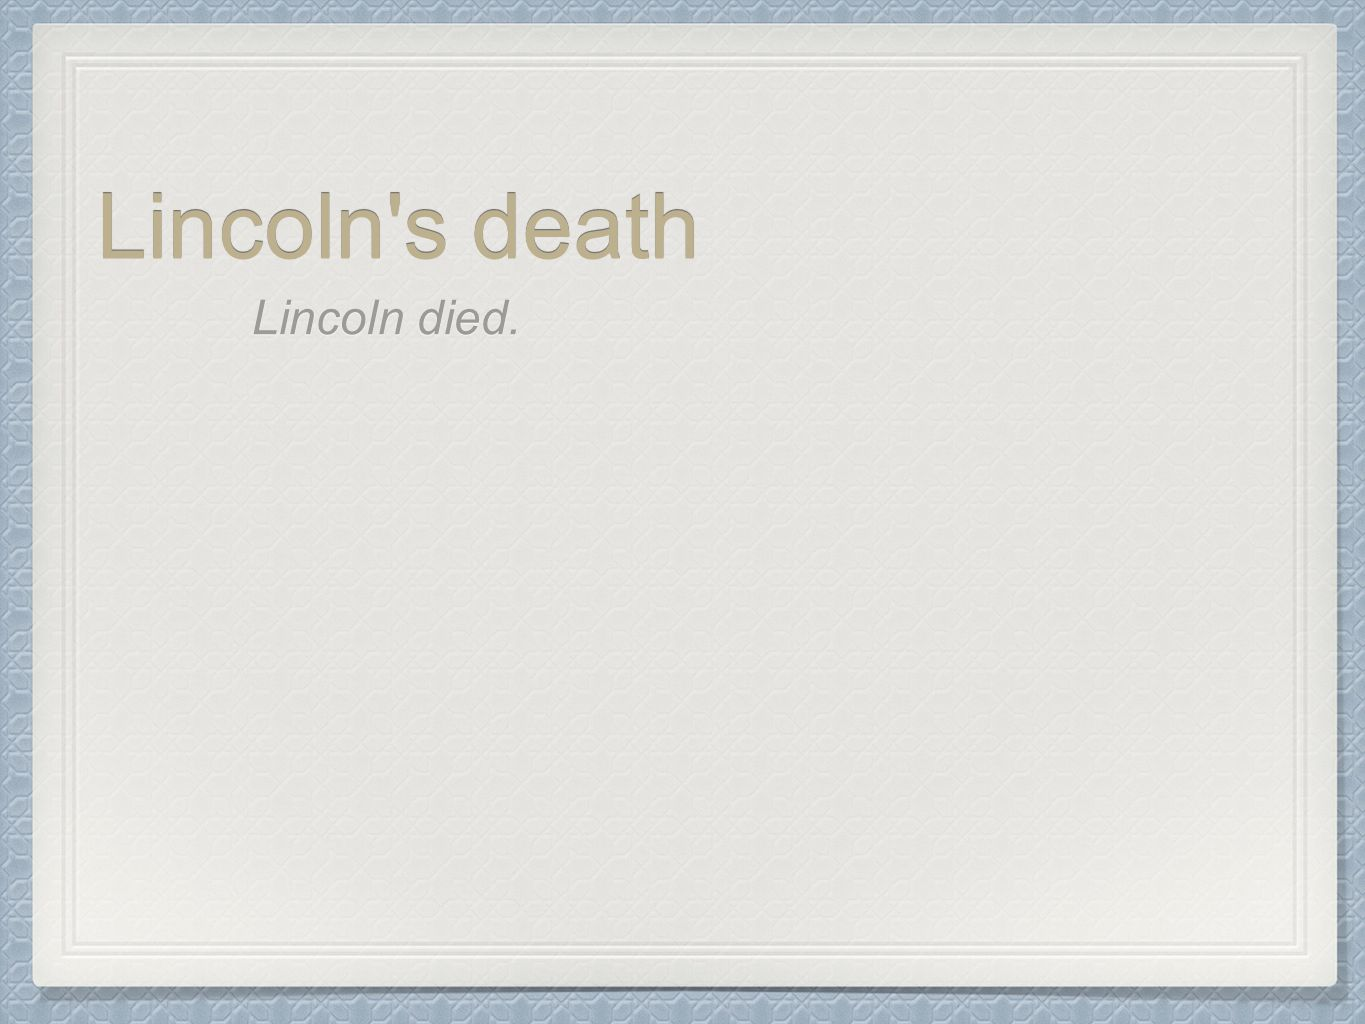 Lincoln s death Lincoln died.